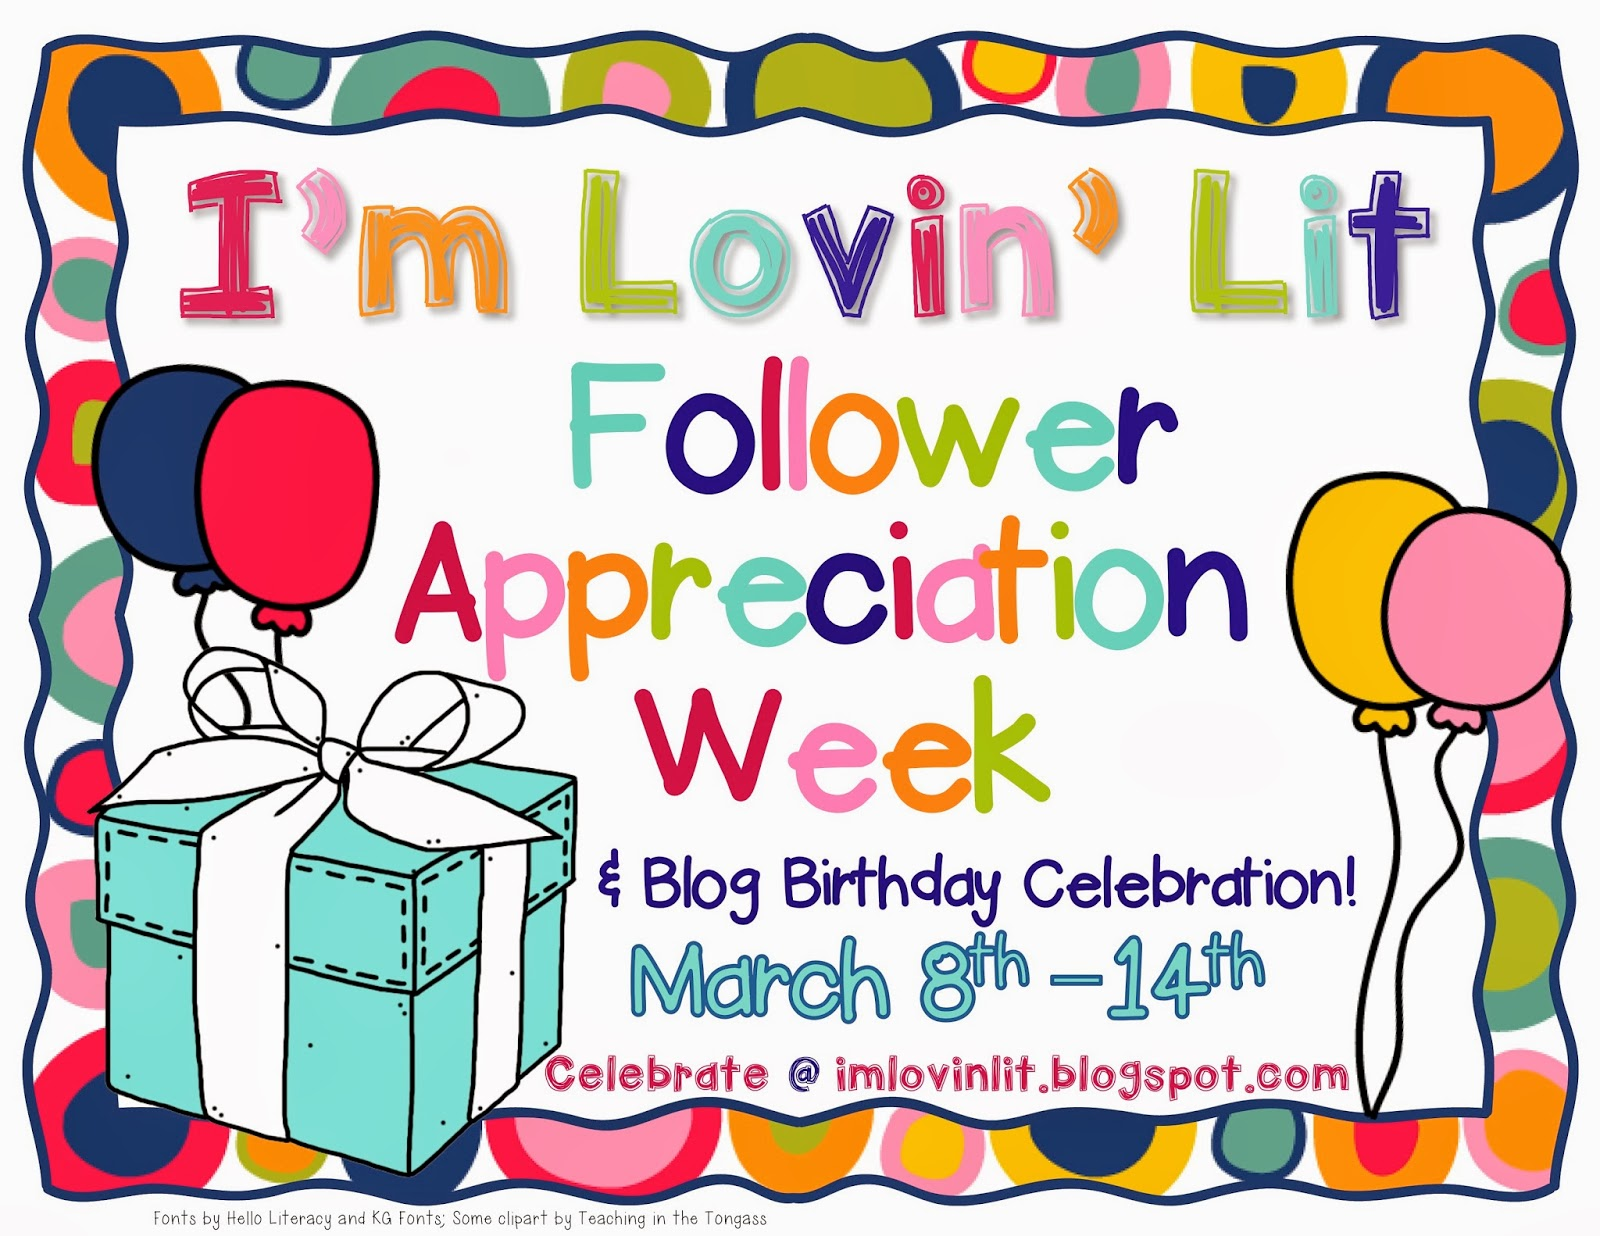 Day 2: Follower Appreciation Week